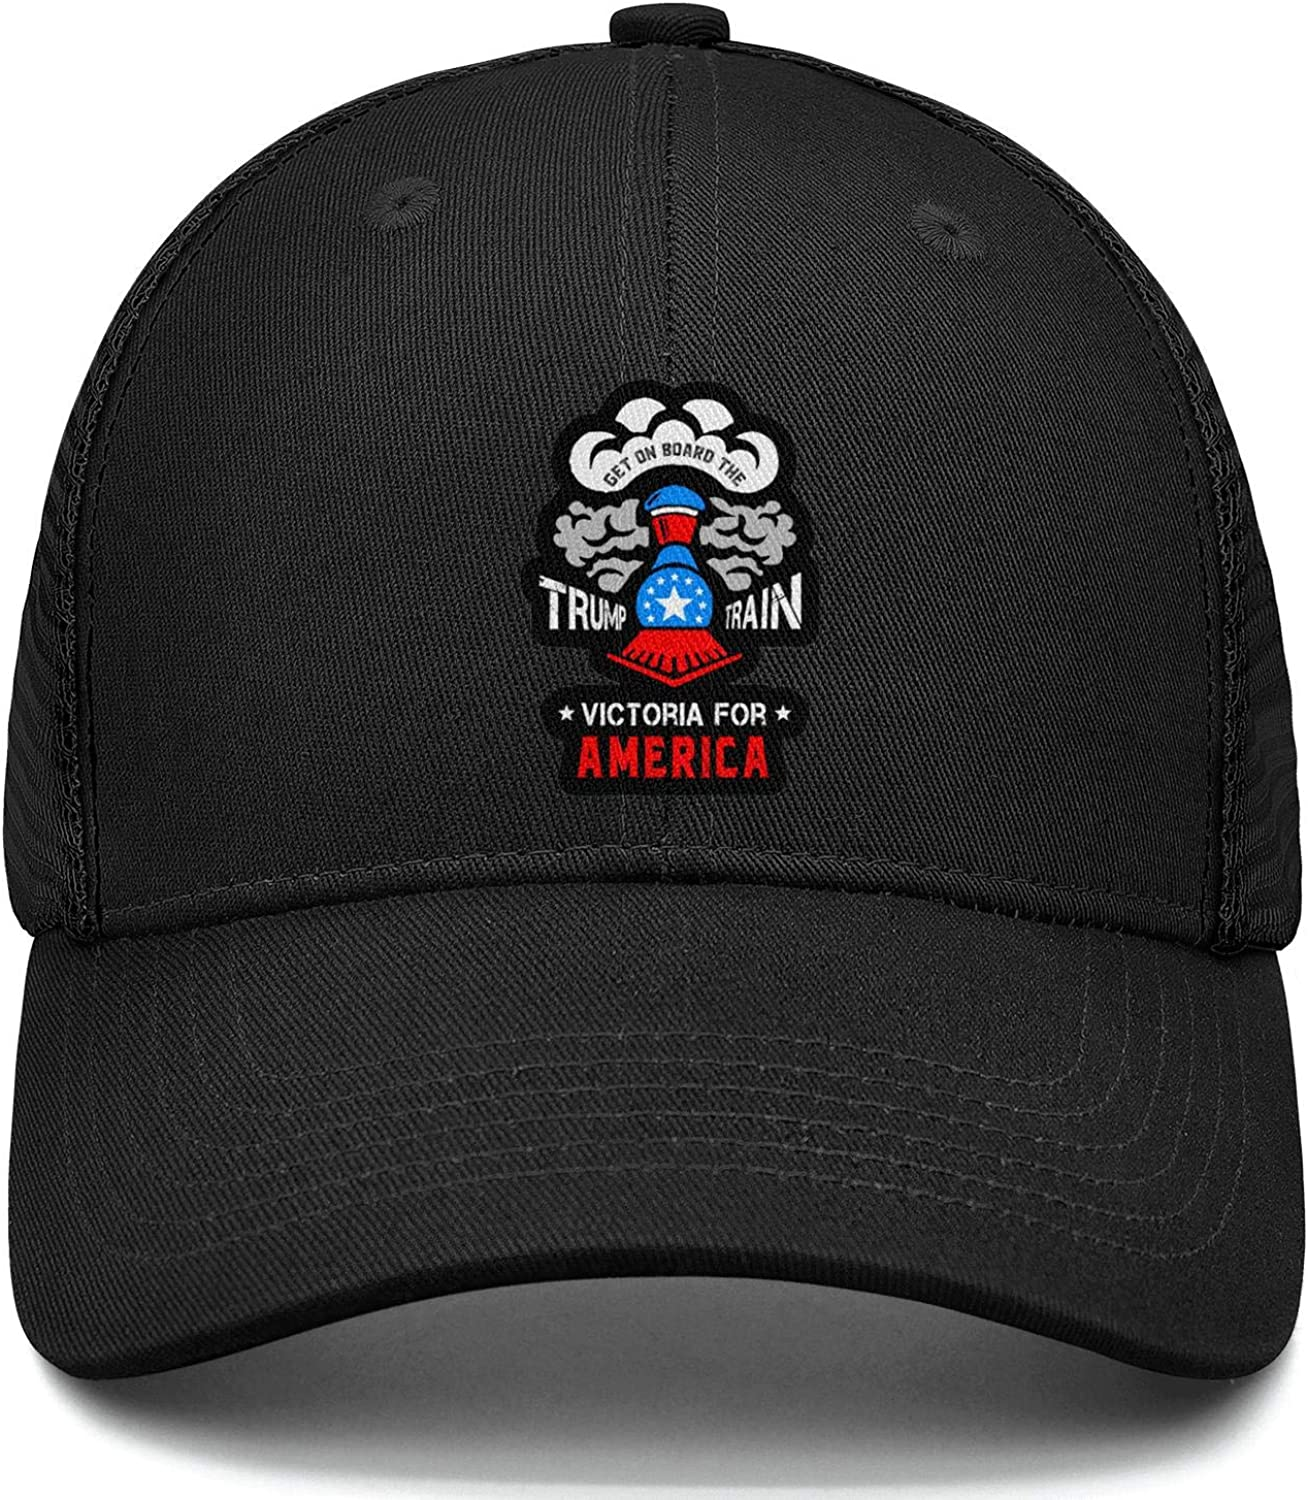 Unisex Get on Board The Trump Train Victoria for America Baseball Cap Mesh Classic Trucker Hat